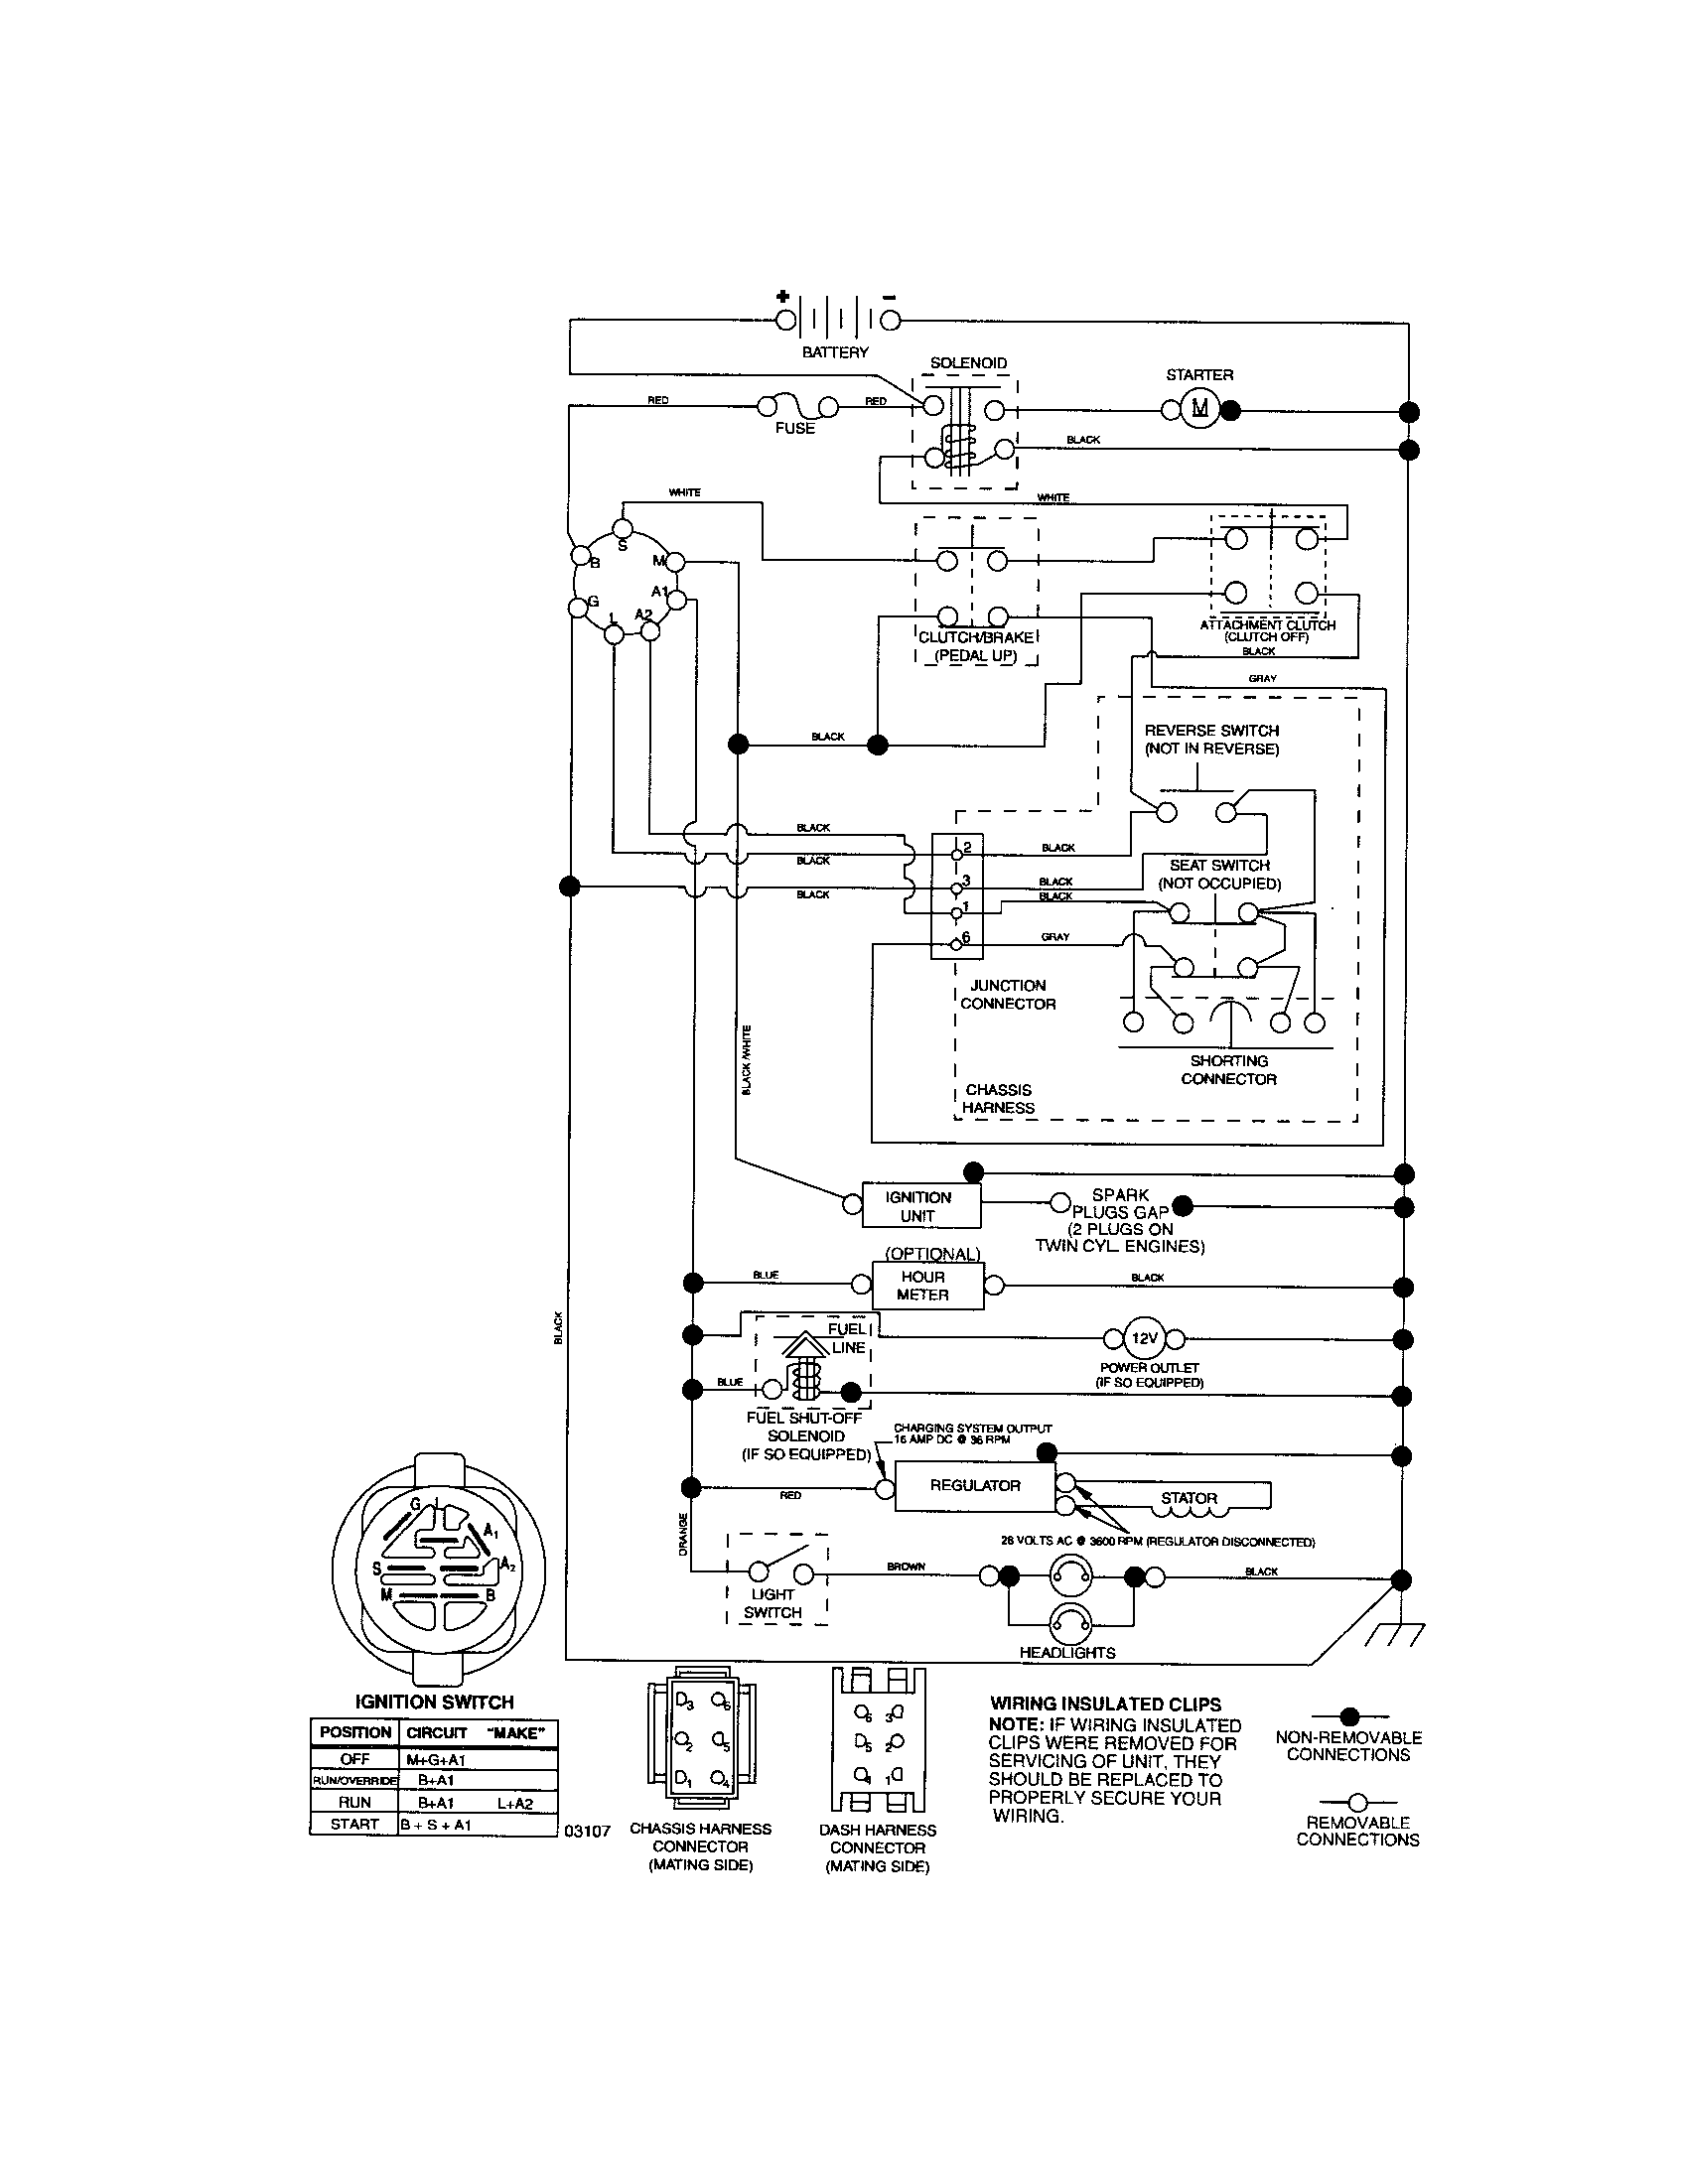 Ryder Utility Trailer Lights Wiring Diagram Diagrams Schematic For Towing Library Hopkins Connector